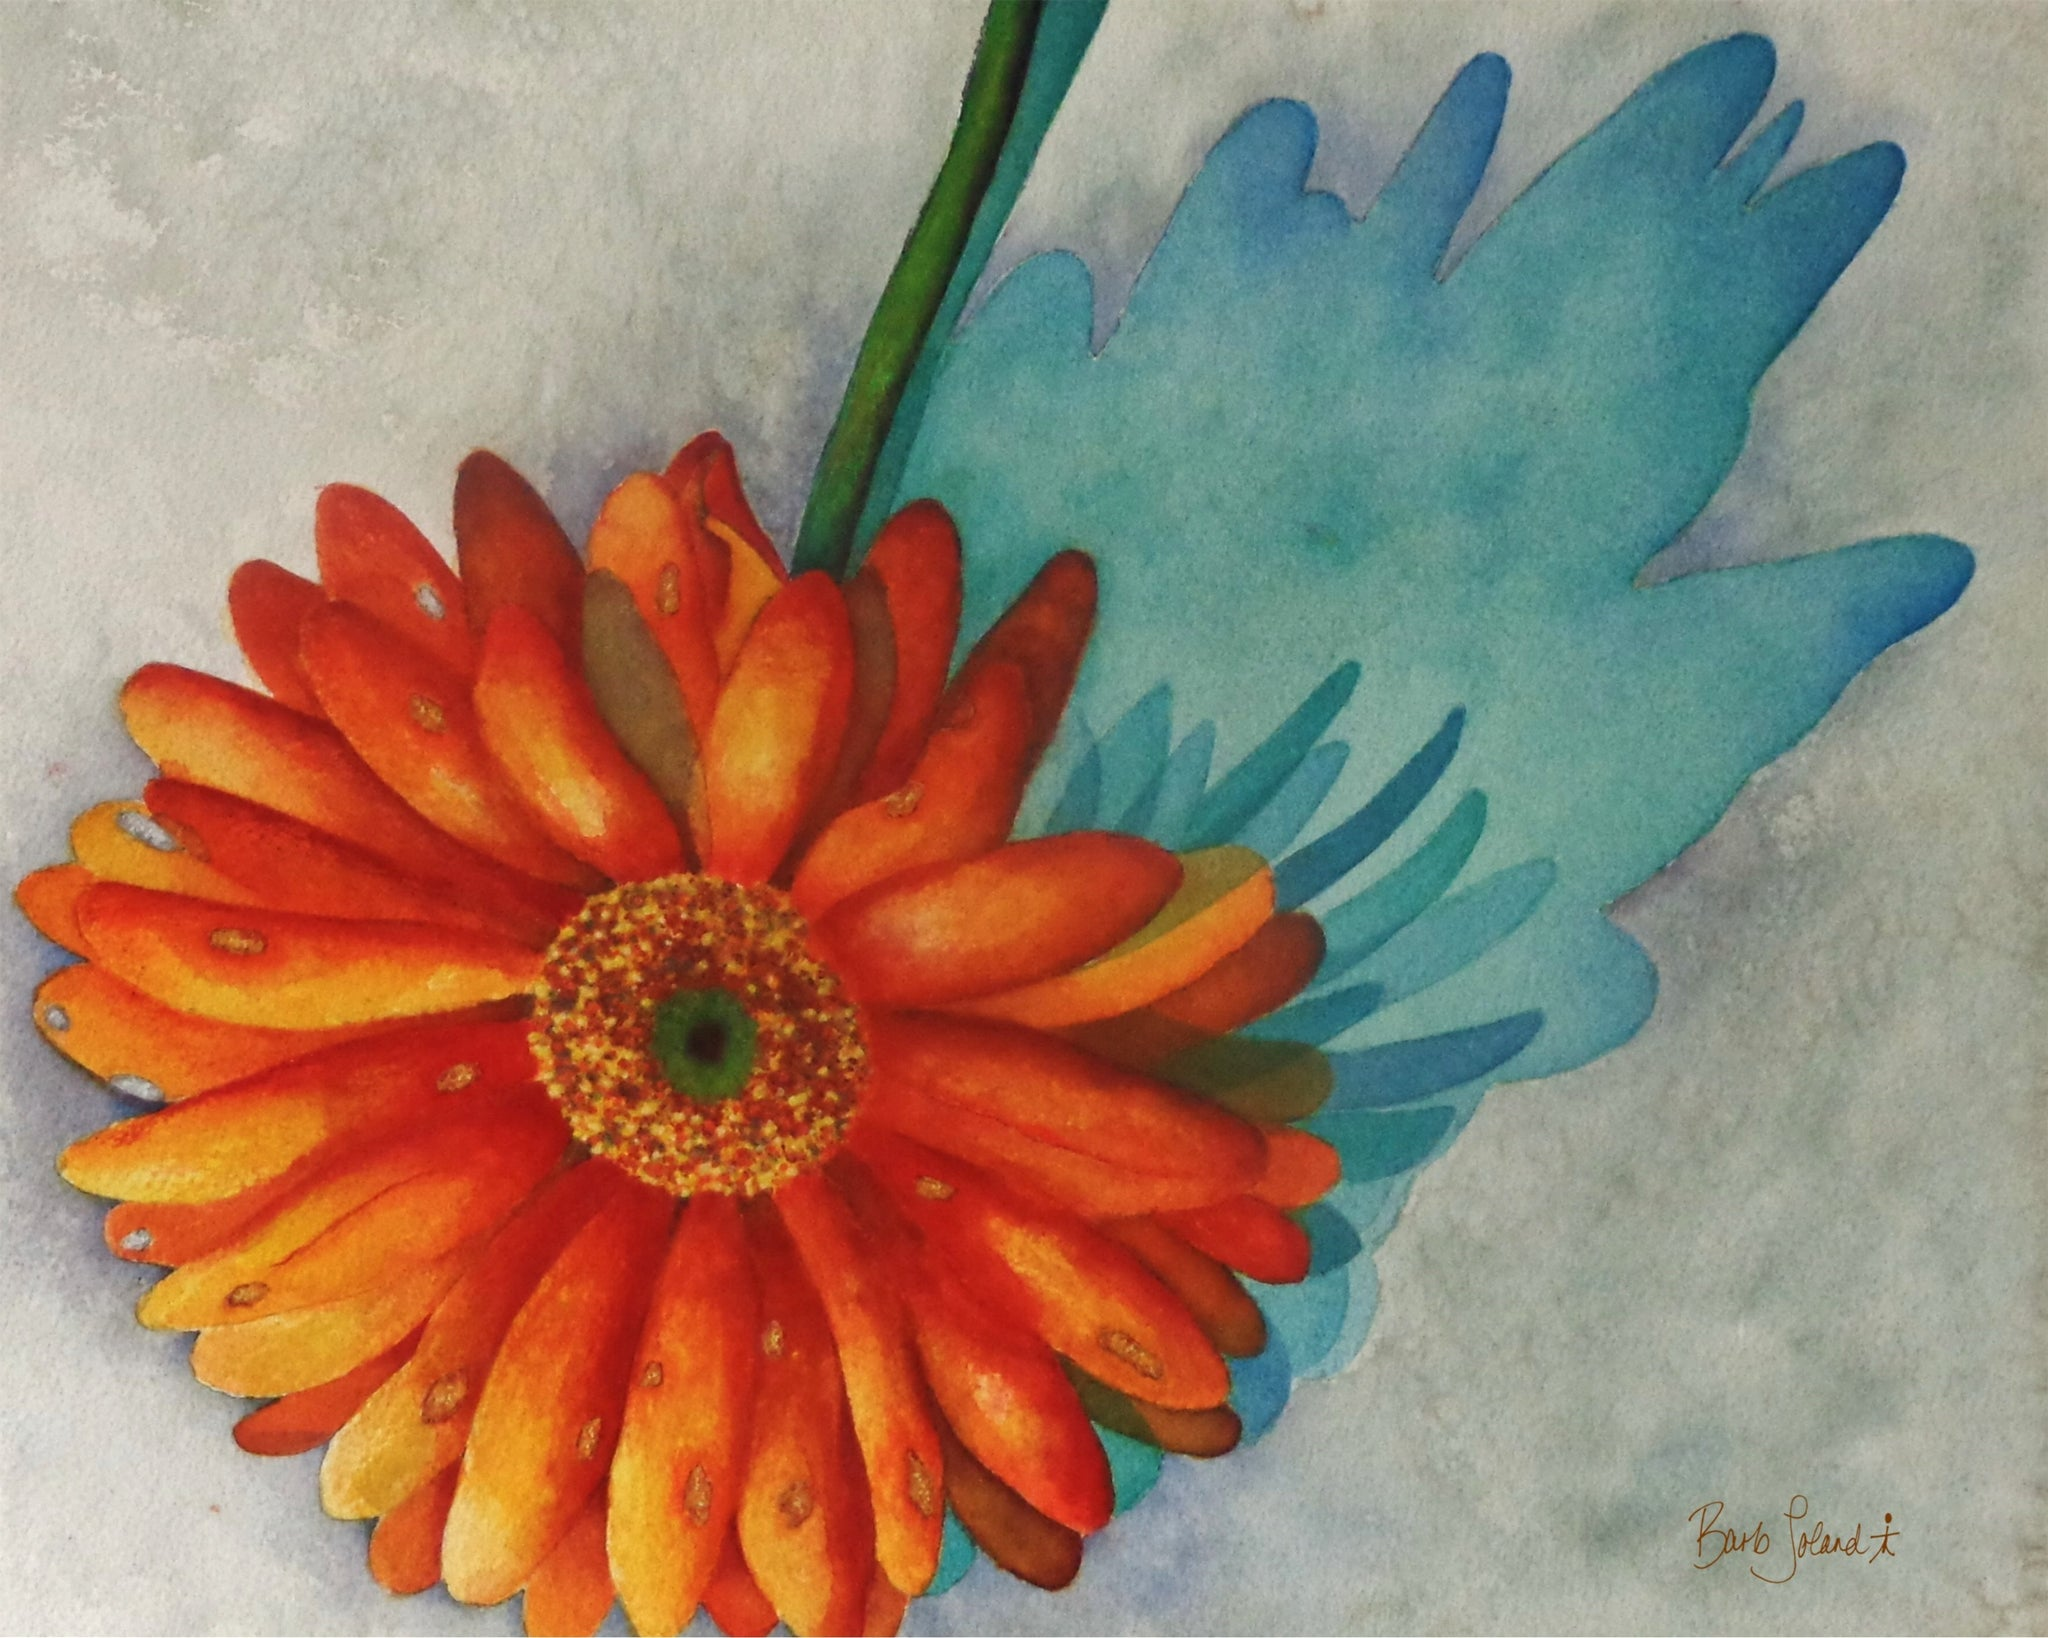 A watercolor painting of a Gerbera daisy & its shadow.